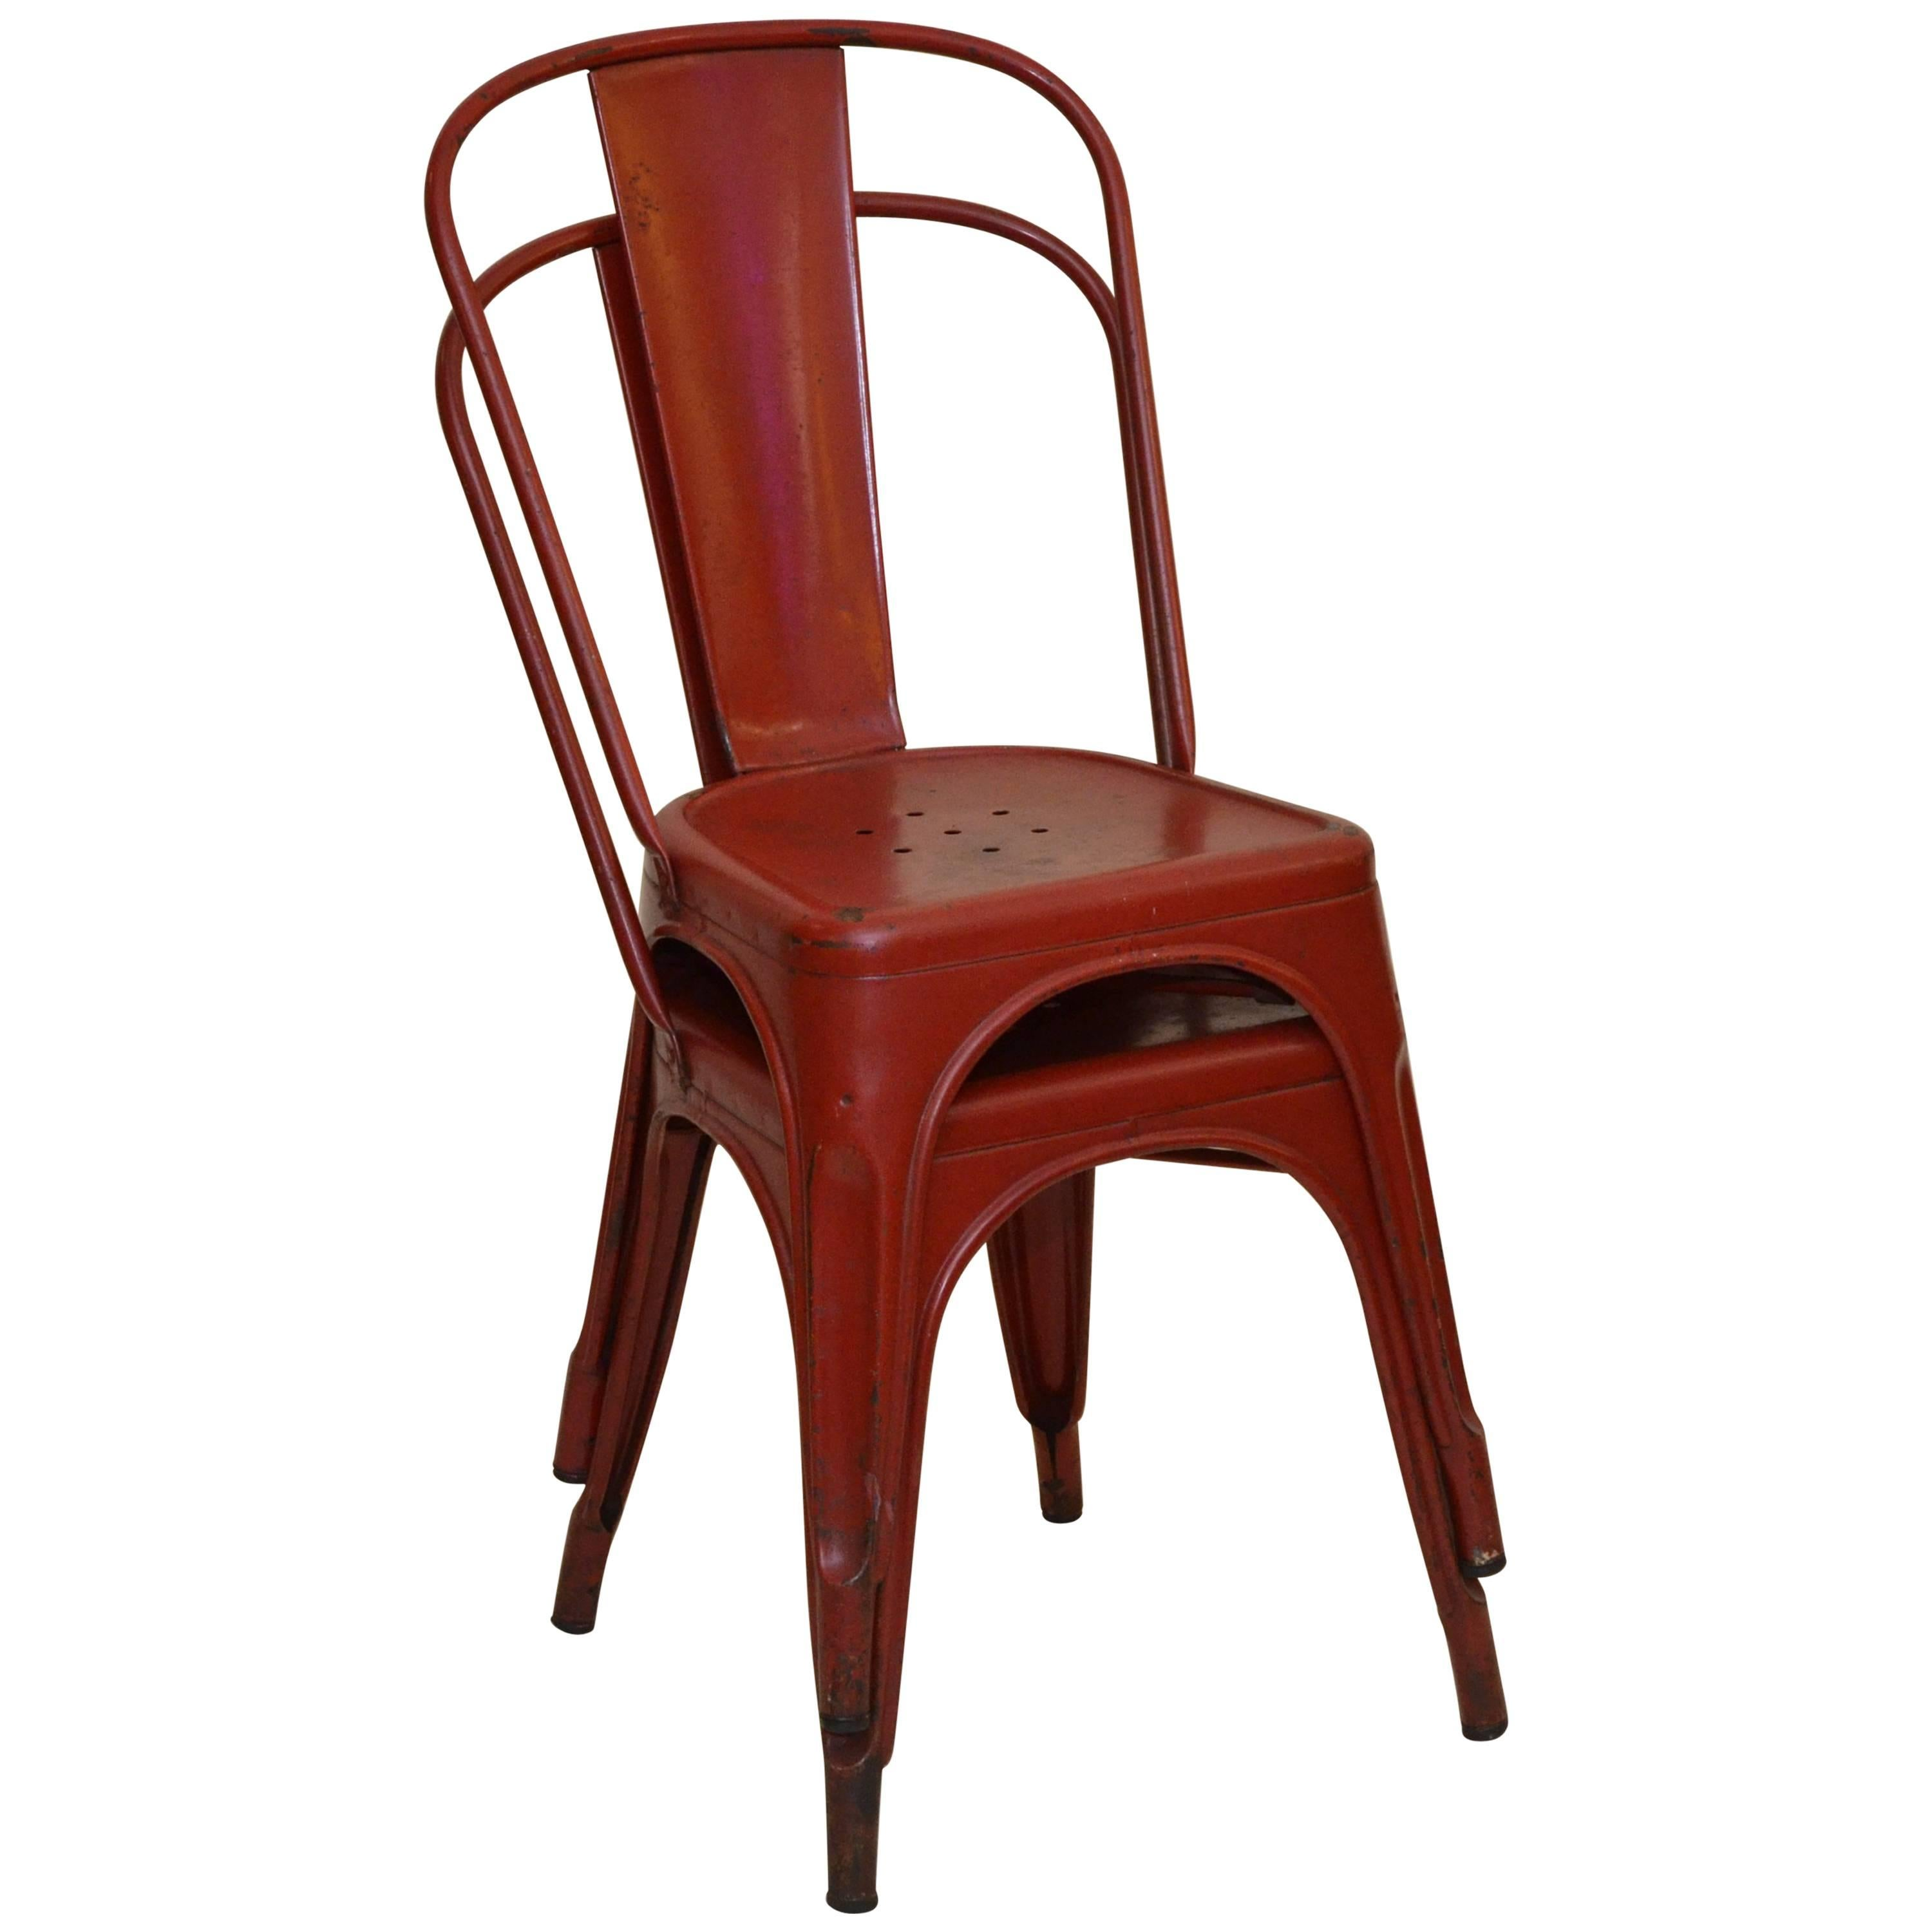 1950s Xavier Pauchard Pair Of Industrial Vintage Red Metal French Chairs,  Tolix For Sale At 1stdibs